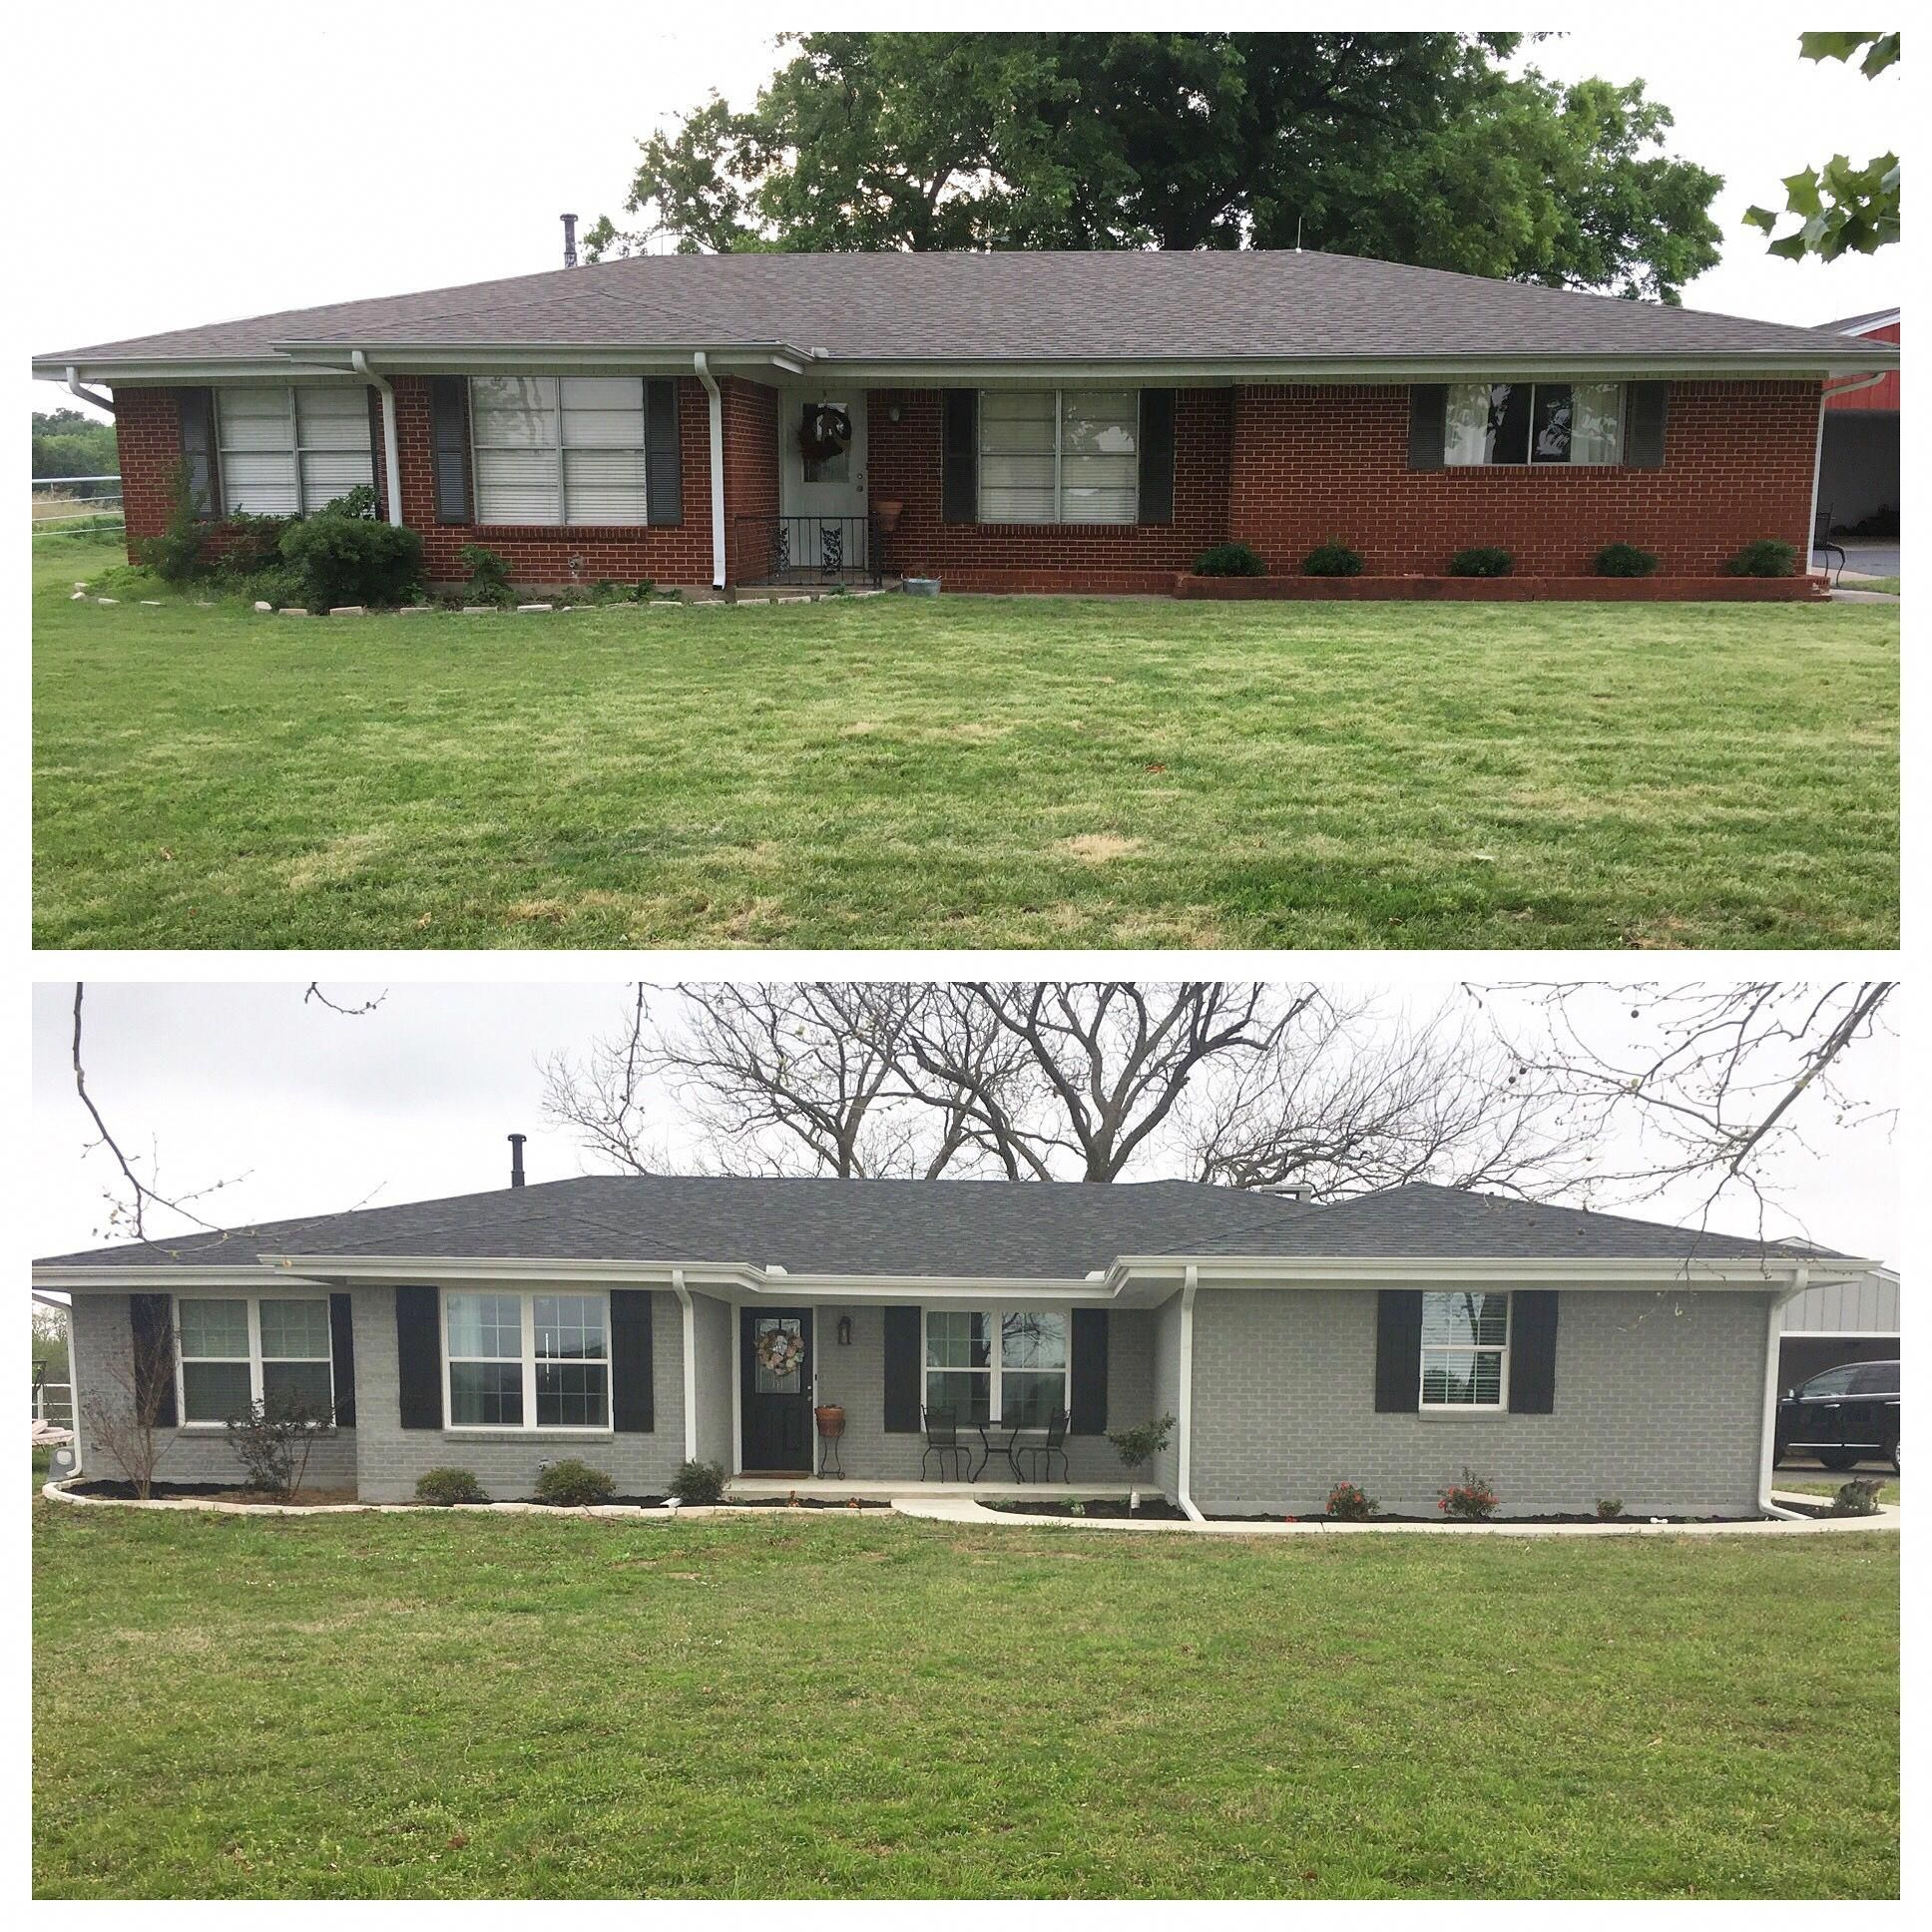 Before And After Ranch Style House Renovation Painted Brick In Sherwin Williams Ellie Gray Farm Sh Painted Brick House Ranch House Remodel Brick Ranch Houses